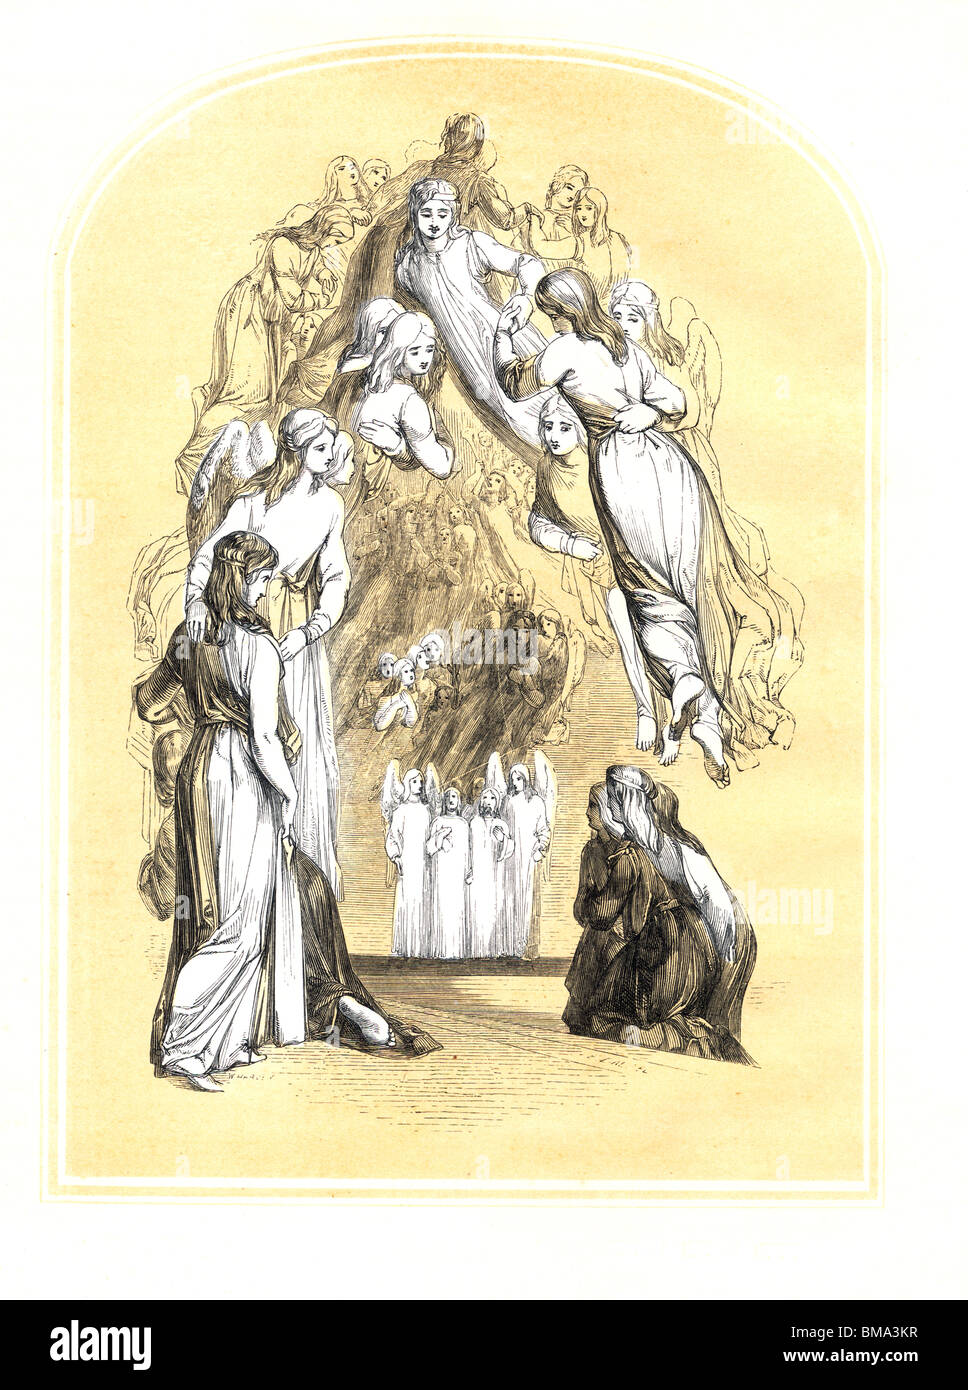 Illustration from John Bunyan's The Pilgrim's Progress; Pilgrima Welcomed by the Heavenly Host; Engraving - Stock Image